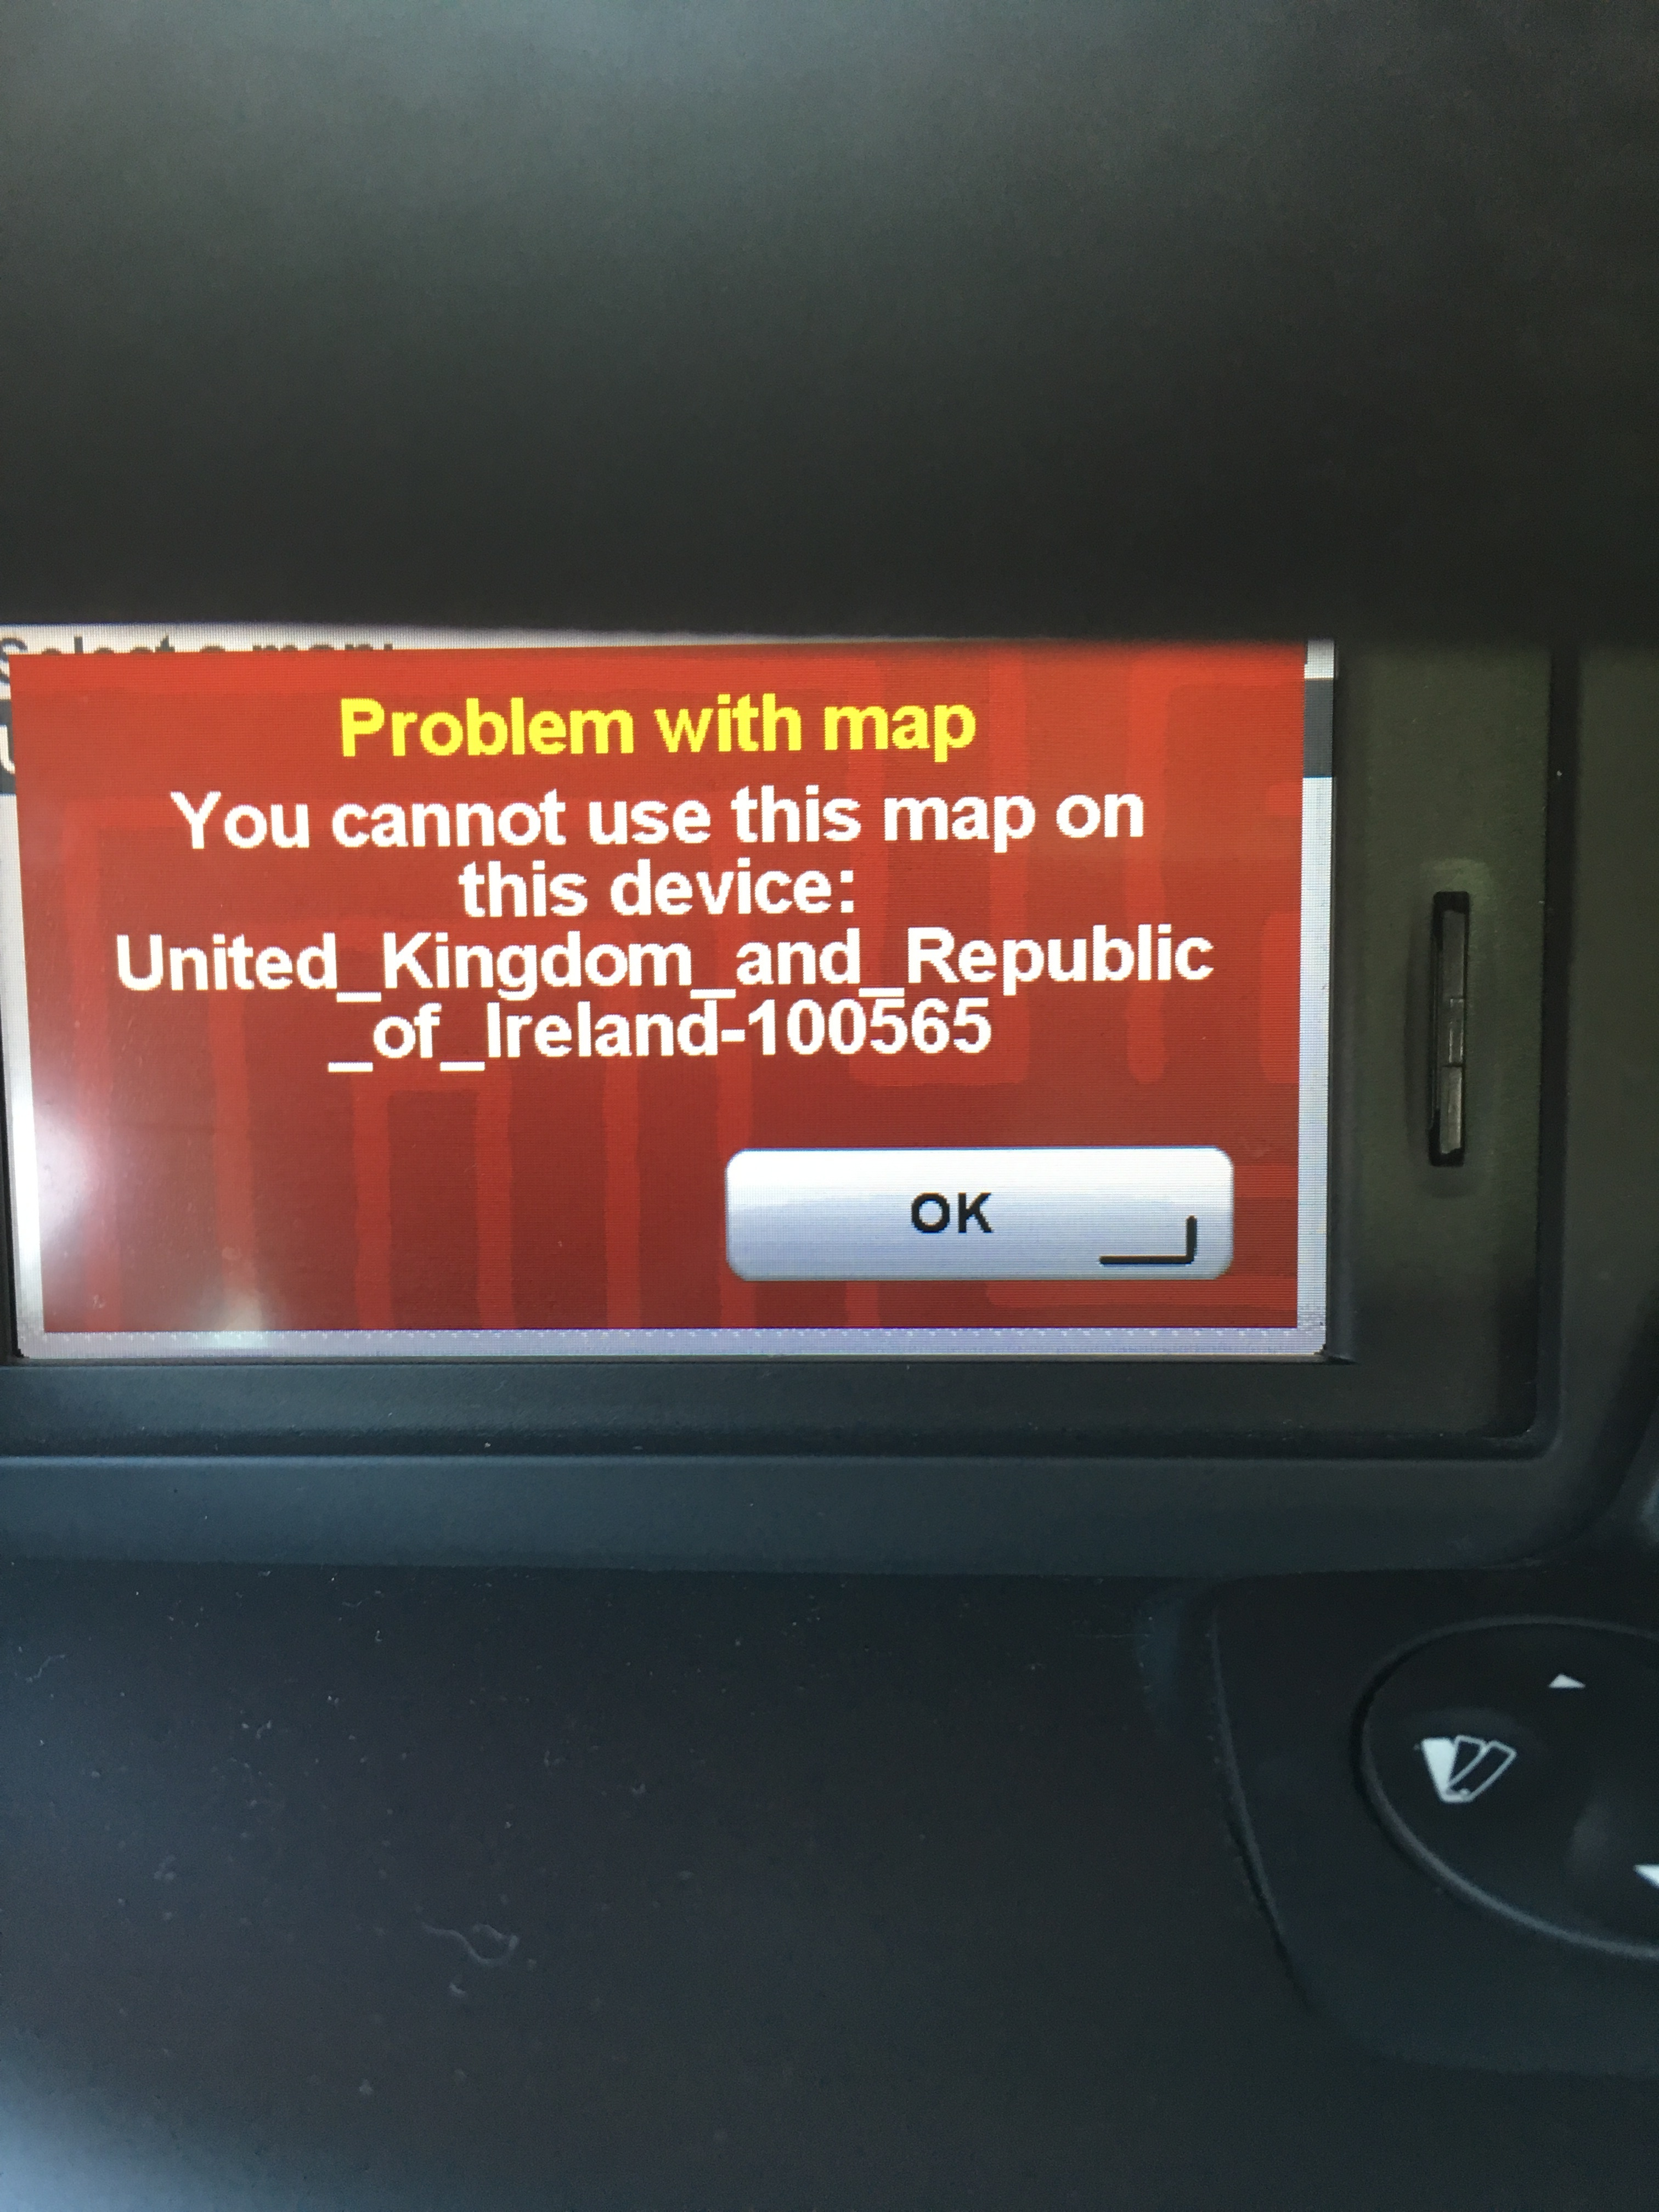 renault scenic 2012 error message you cannot user the map on this rh en discussions tomtom com Online User Guide Online User Guide